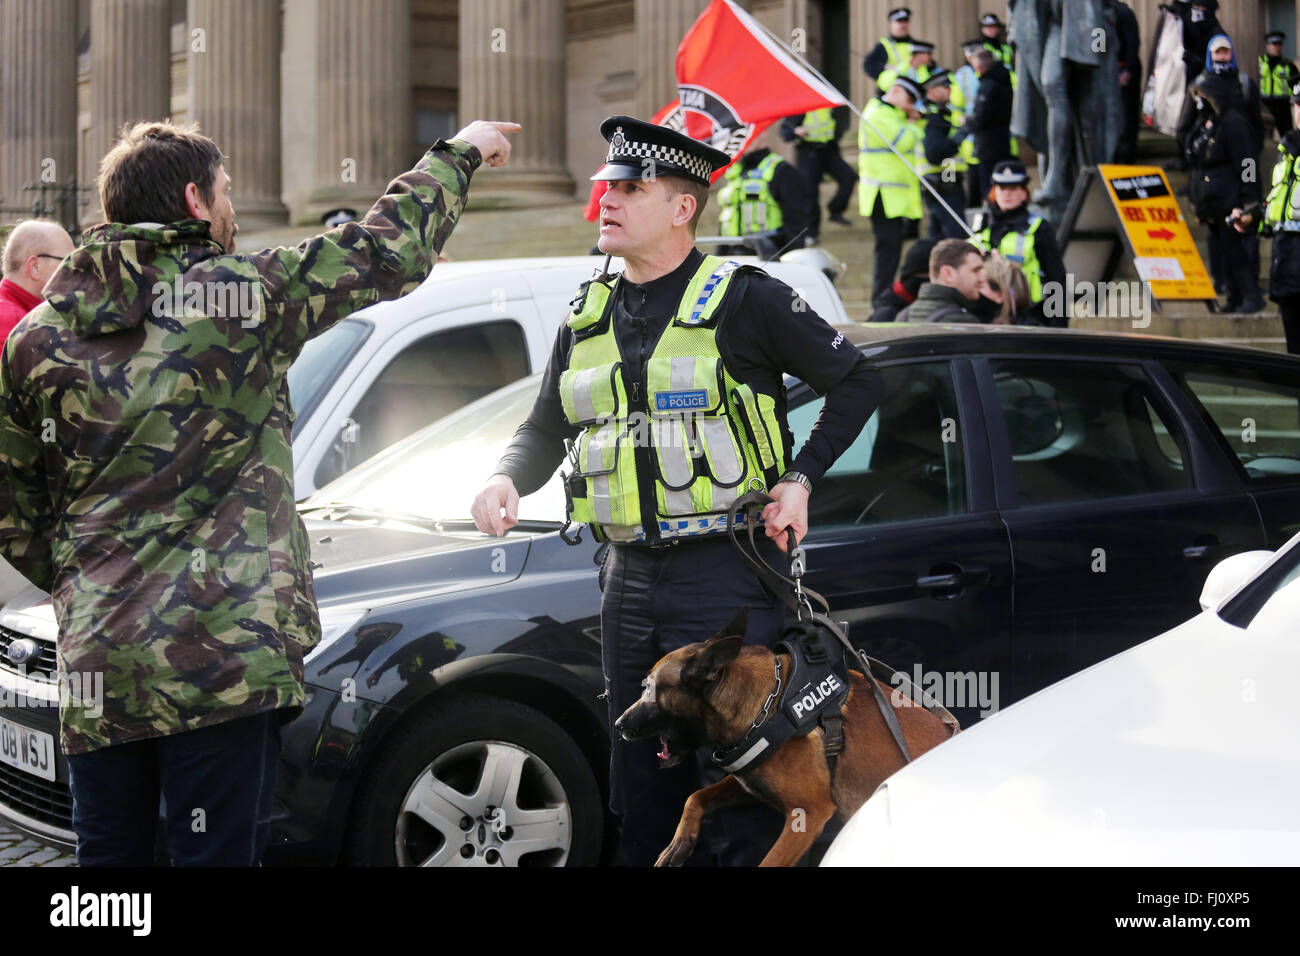 Liverpool, UK. 27th Feb, 2016. A Police Dog handler speaking to an anti racist protester in Liverpool, UK 27th February - Stock Image